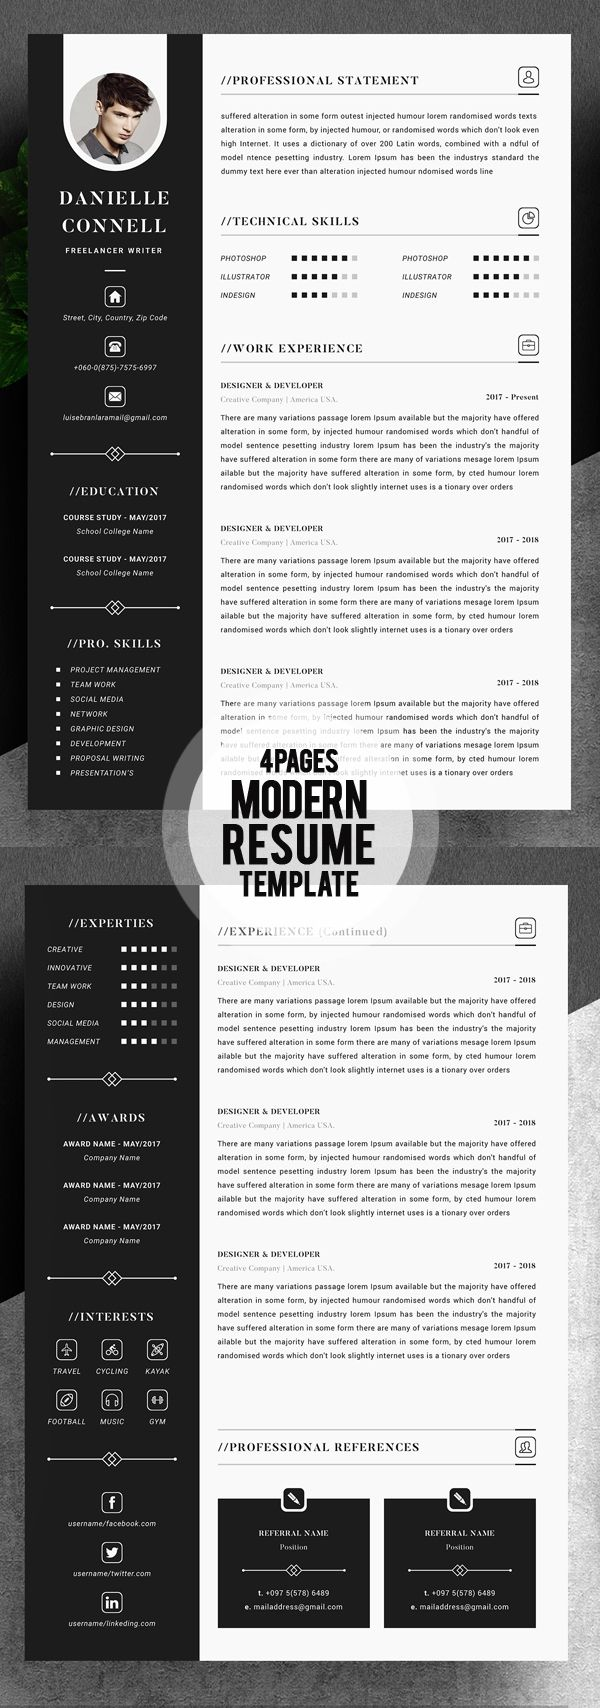 modern resume template 2018  4 pages   photoshopresume